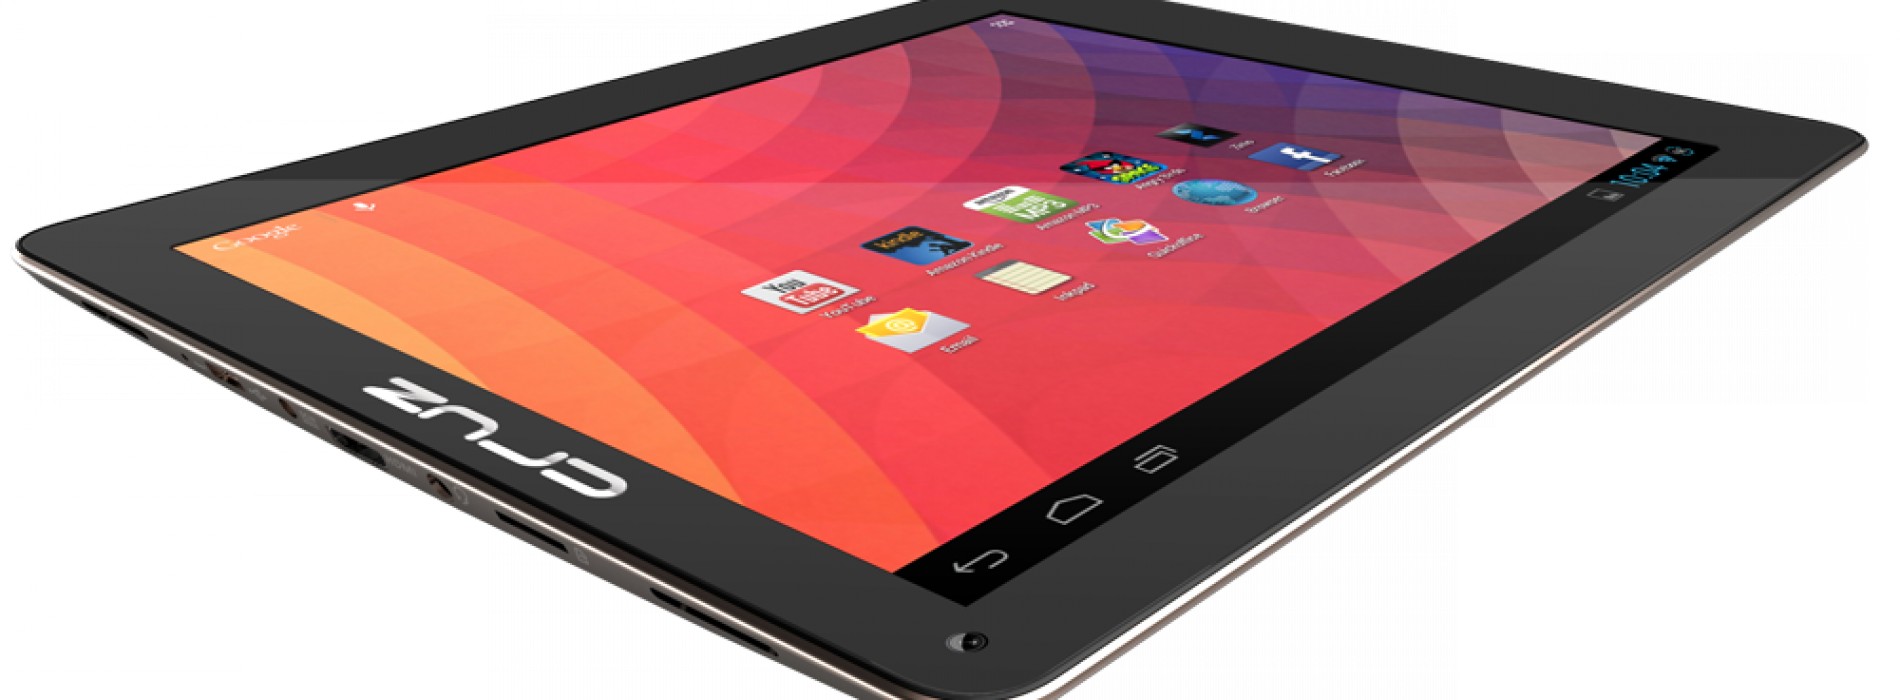 Velocity announces Cruz D610 and Q610, possibly their first tablets that aren't mediocre